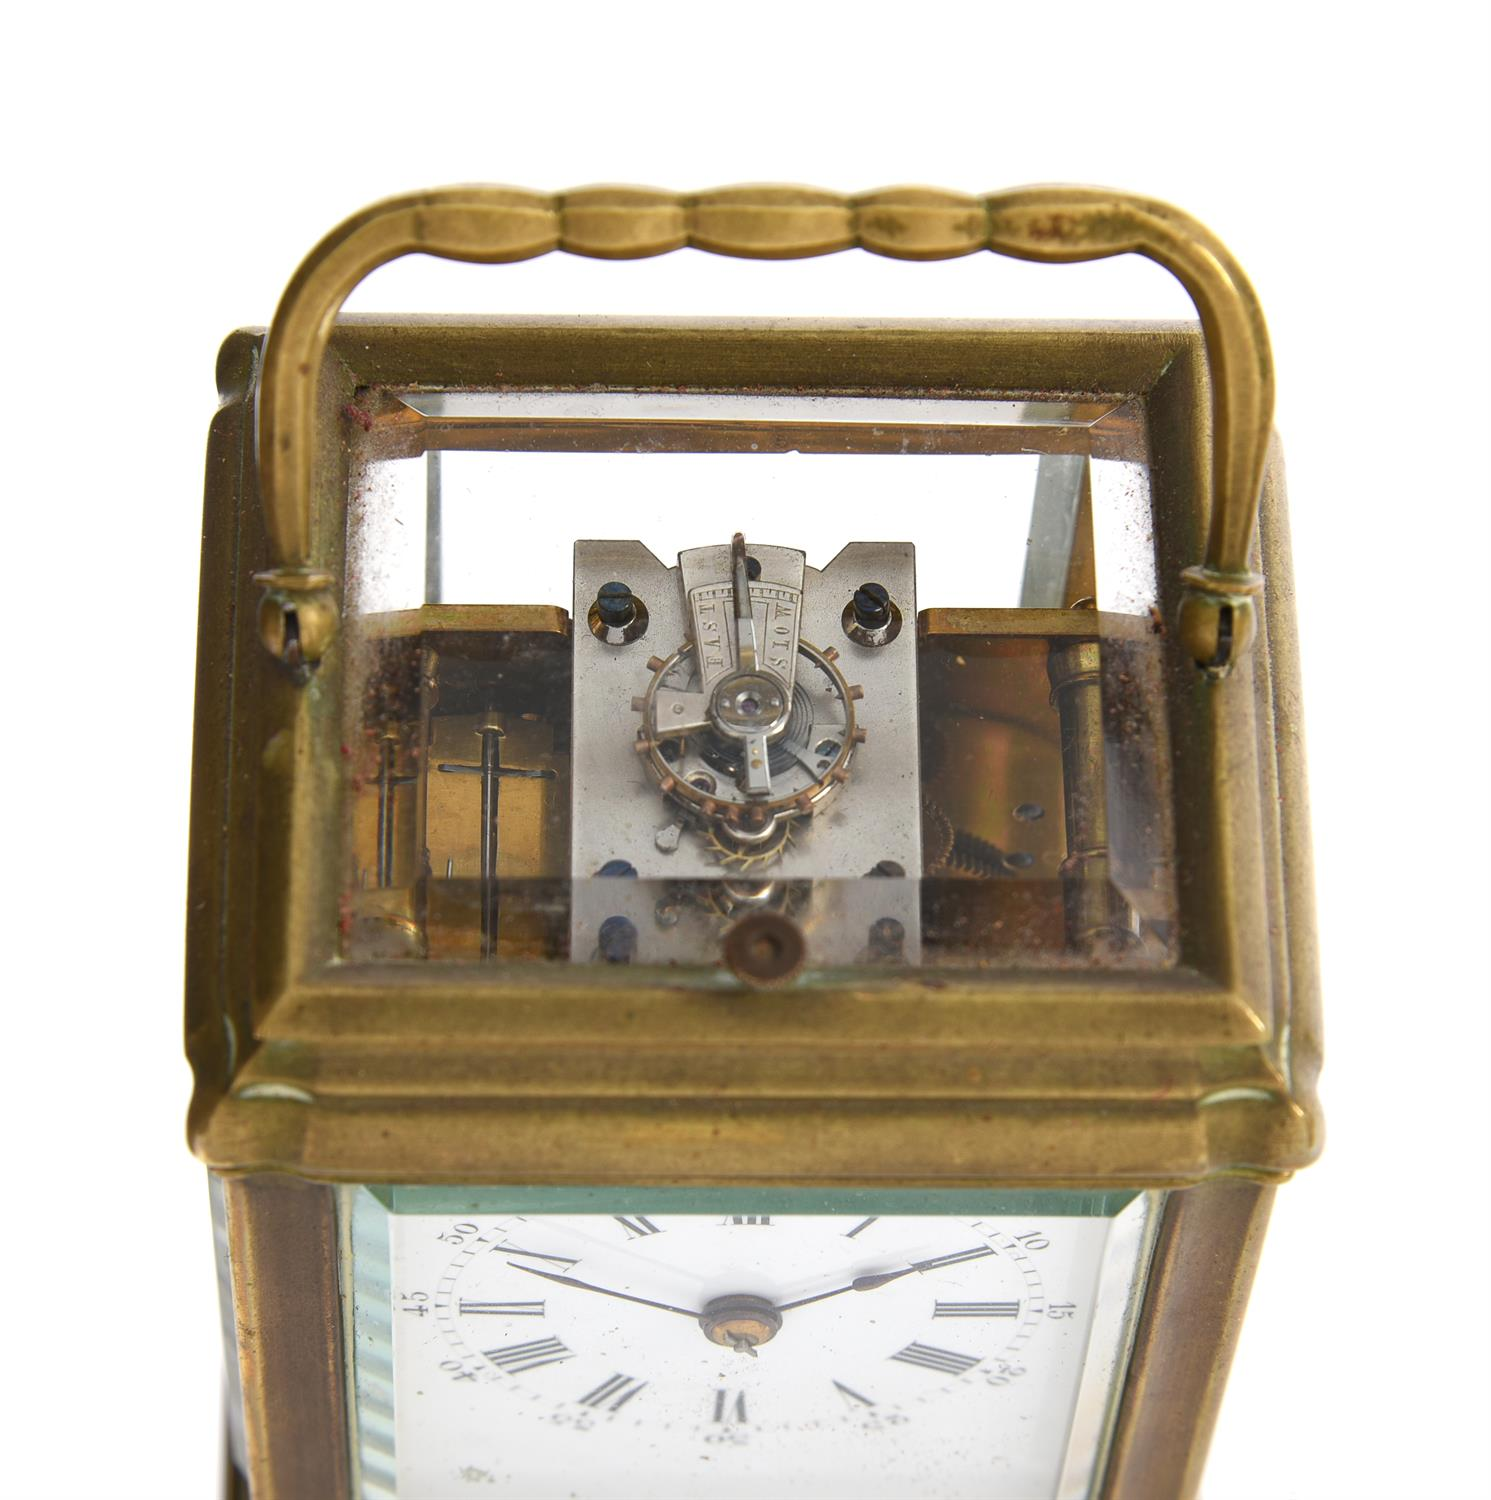 A French brass mid-sized gorge carriage clock with push-button repeat - Image 2 of 3